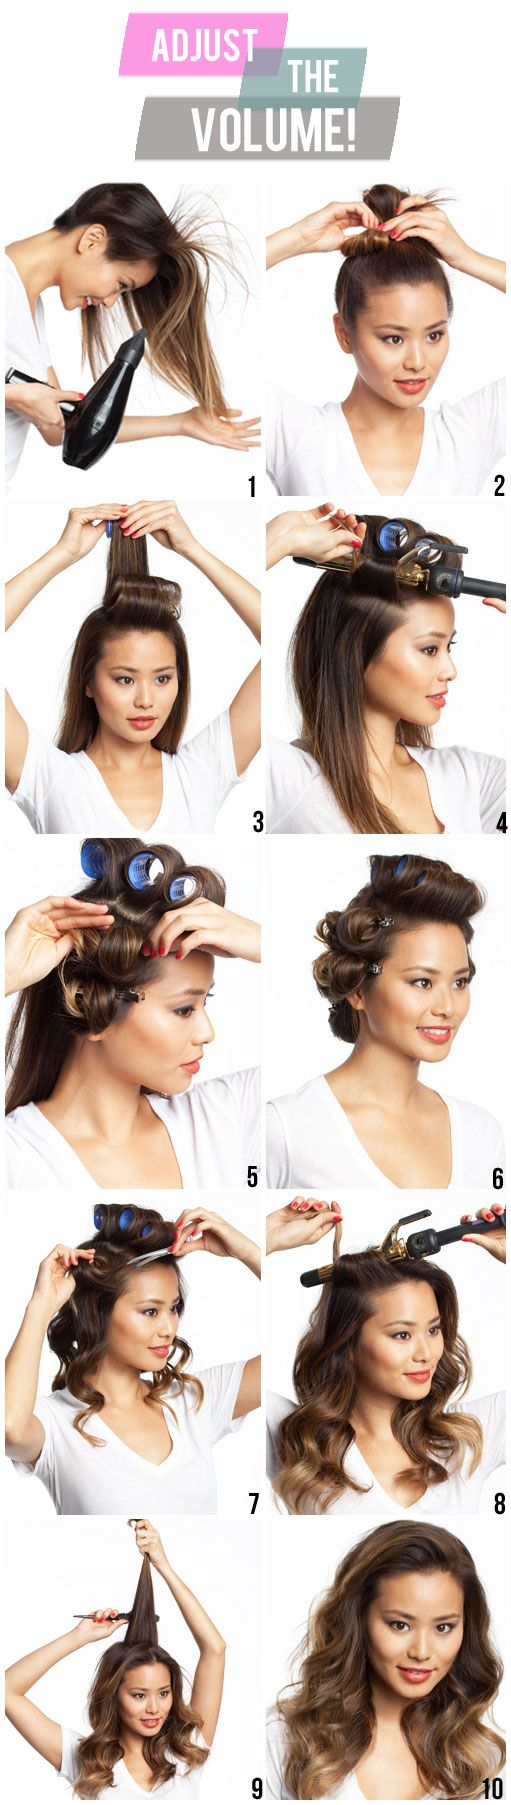 302 best Bridal Hairstyles images on Pinterest | Bridal hairstyles ...